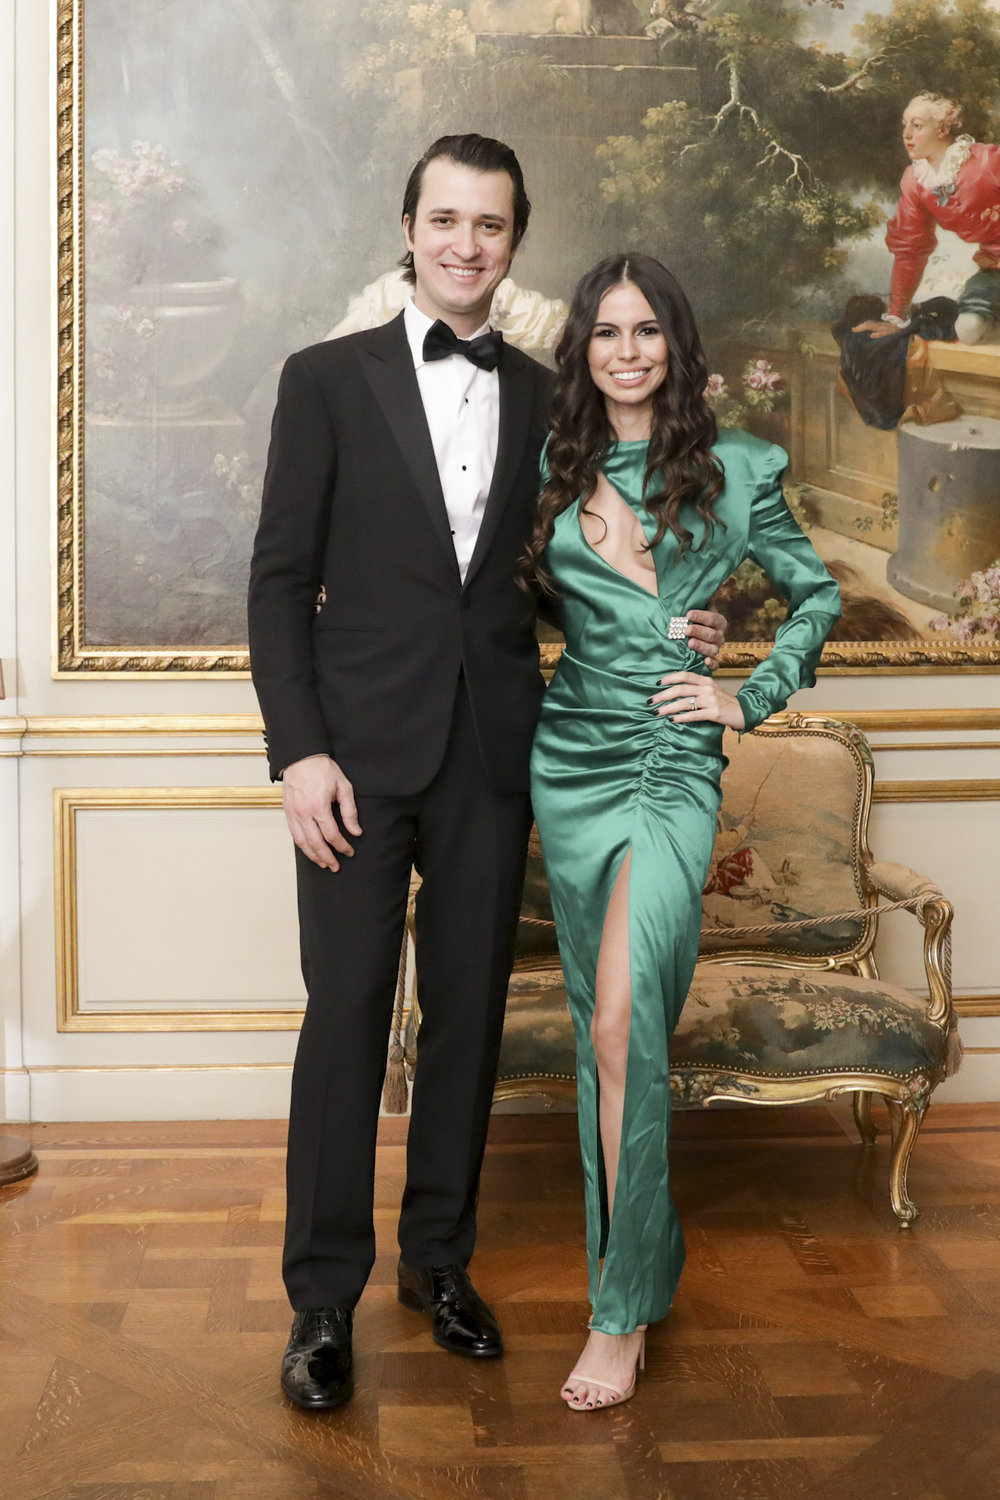 Andy Terra and Flavia Terra attend The Frick Collection's 20th Annual Young Fellows Ball at 1 East 70th Street on Thursday, March 21st, 2019. Photography, Courtesy of The Frick Collection.